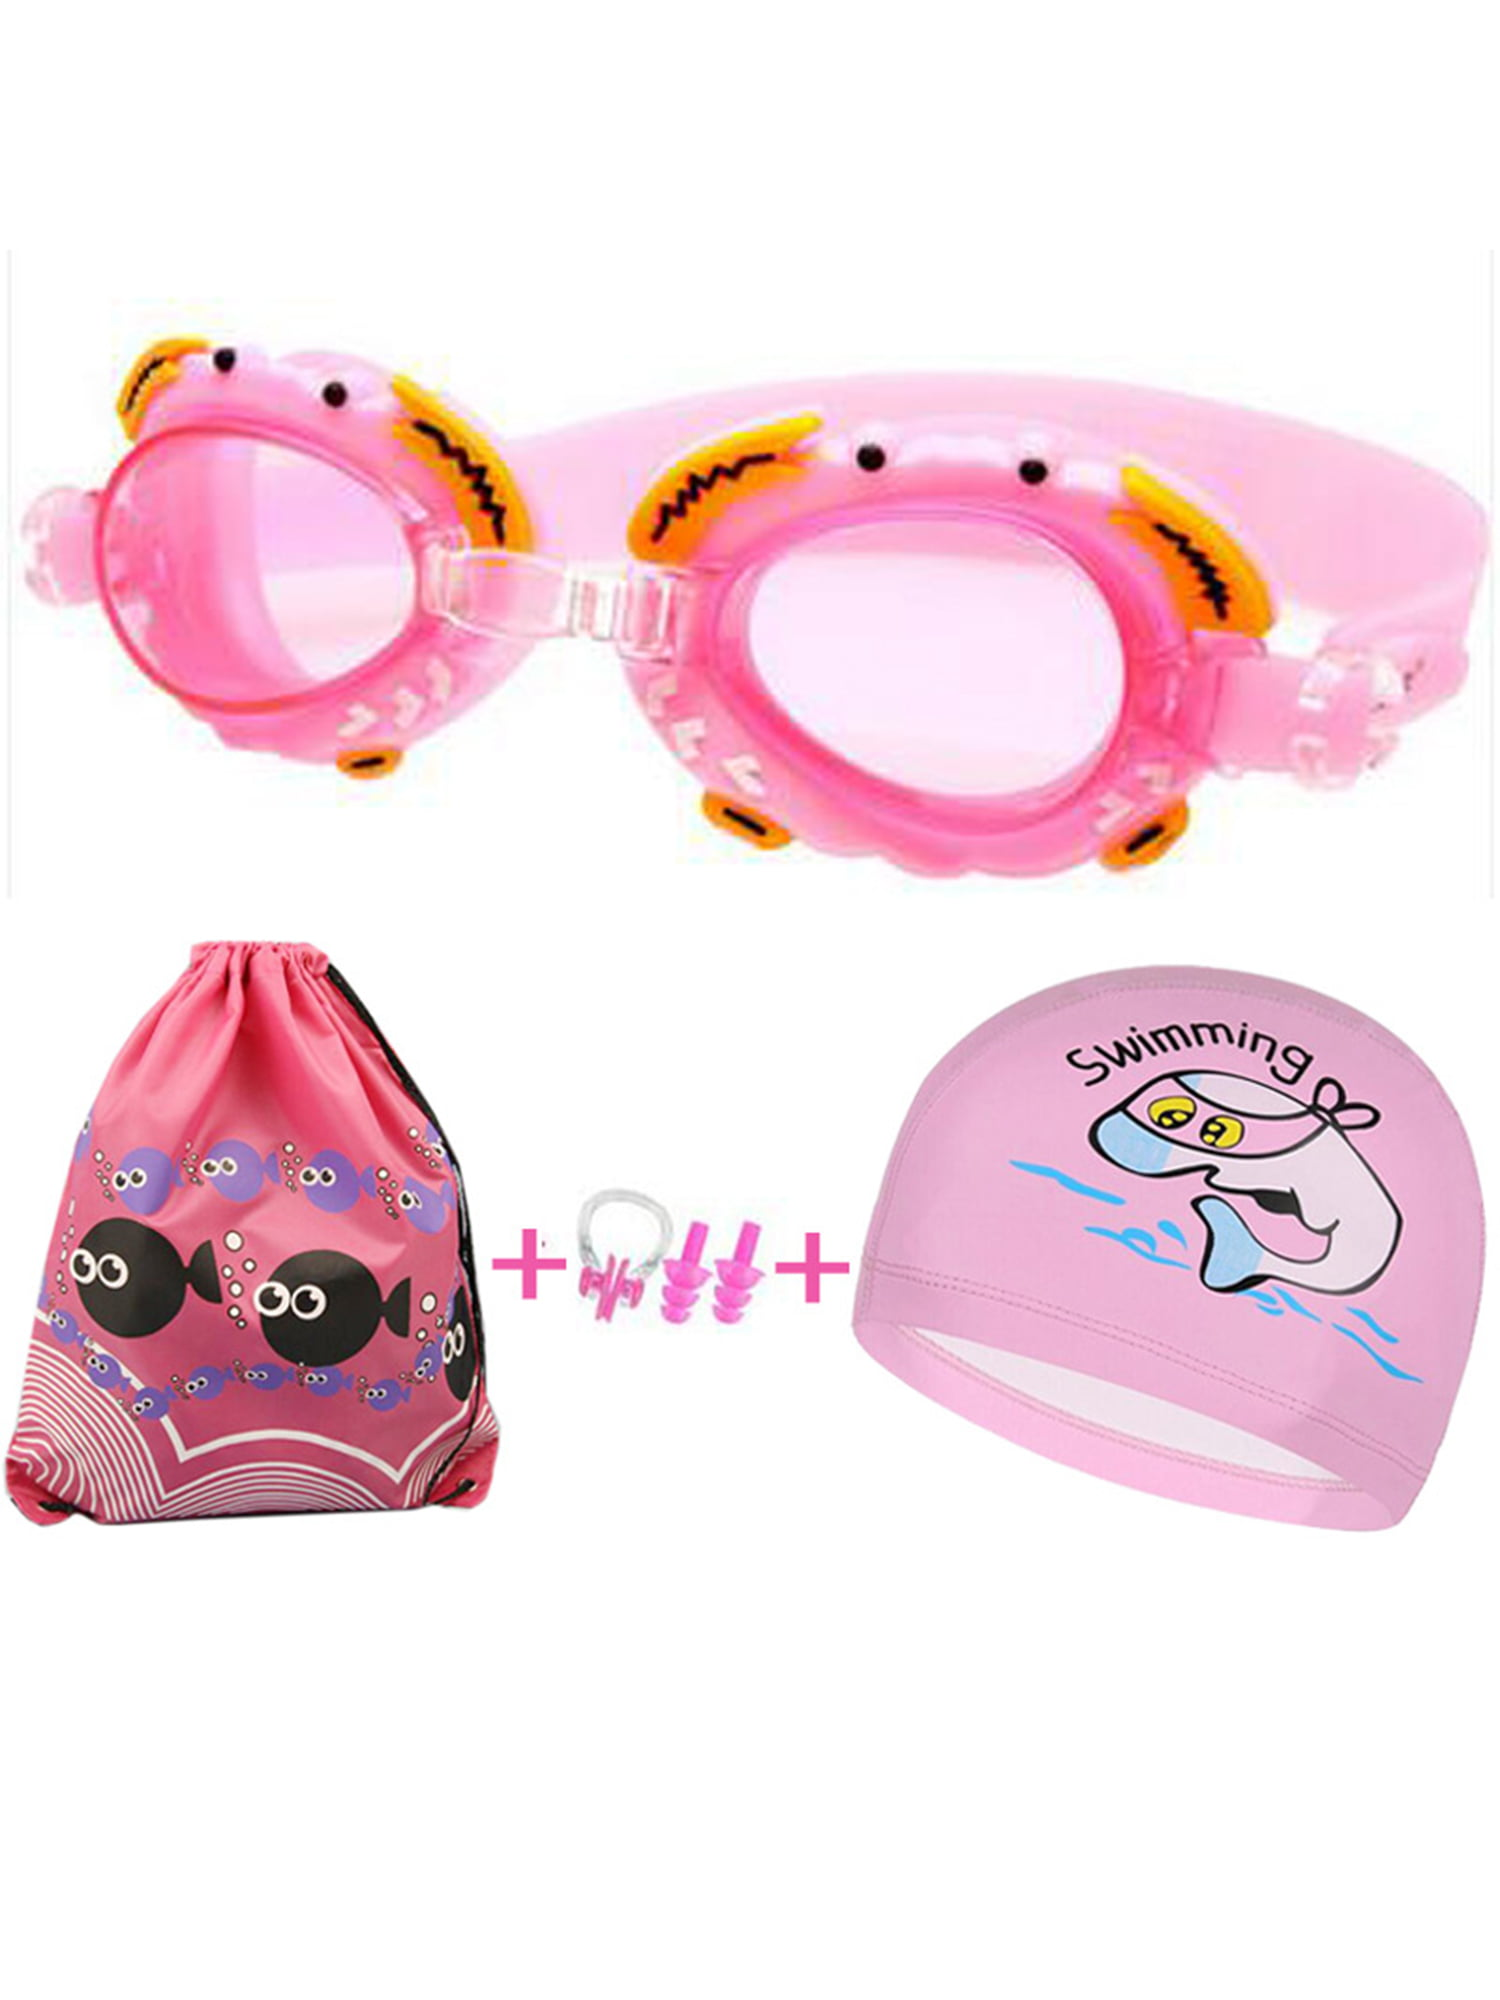 pink High-definition Waterproof Anti-fog and Anti-UV Swimming Glasses Silicone Swimming Cap Four-piece suit Protective Sleeve Earplugs Men Women,Adults Goggles +Double-Sided Swimming Cap